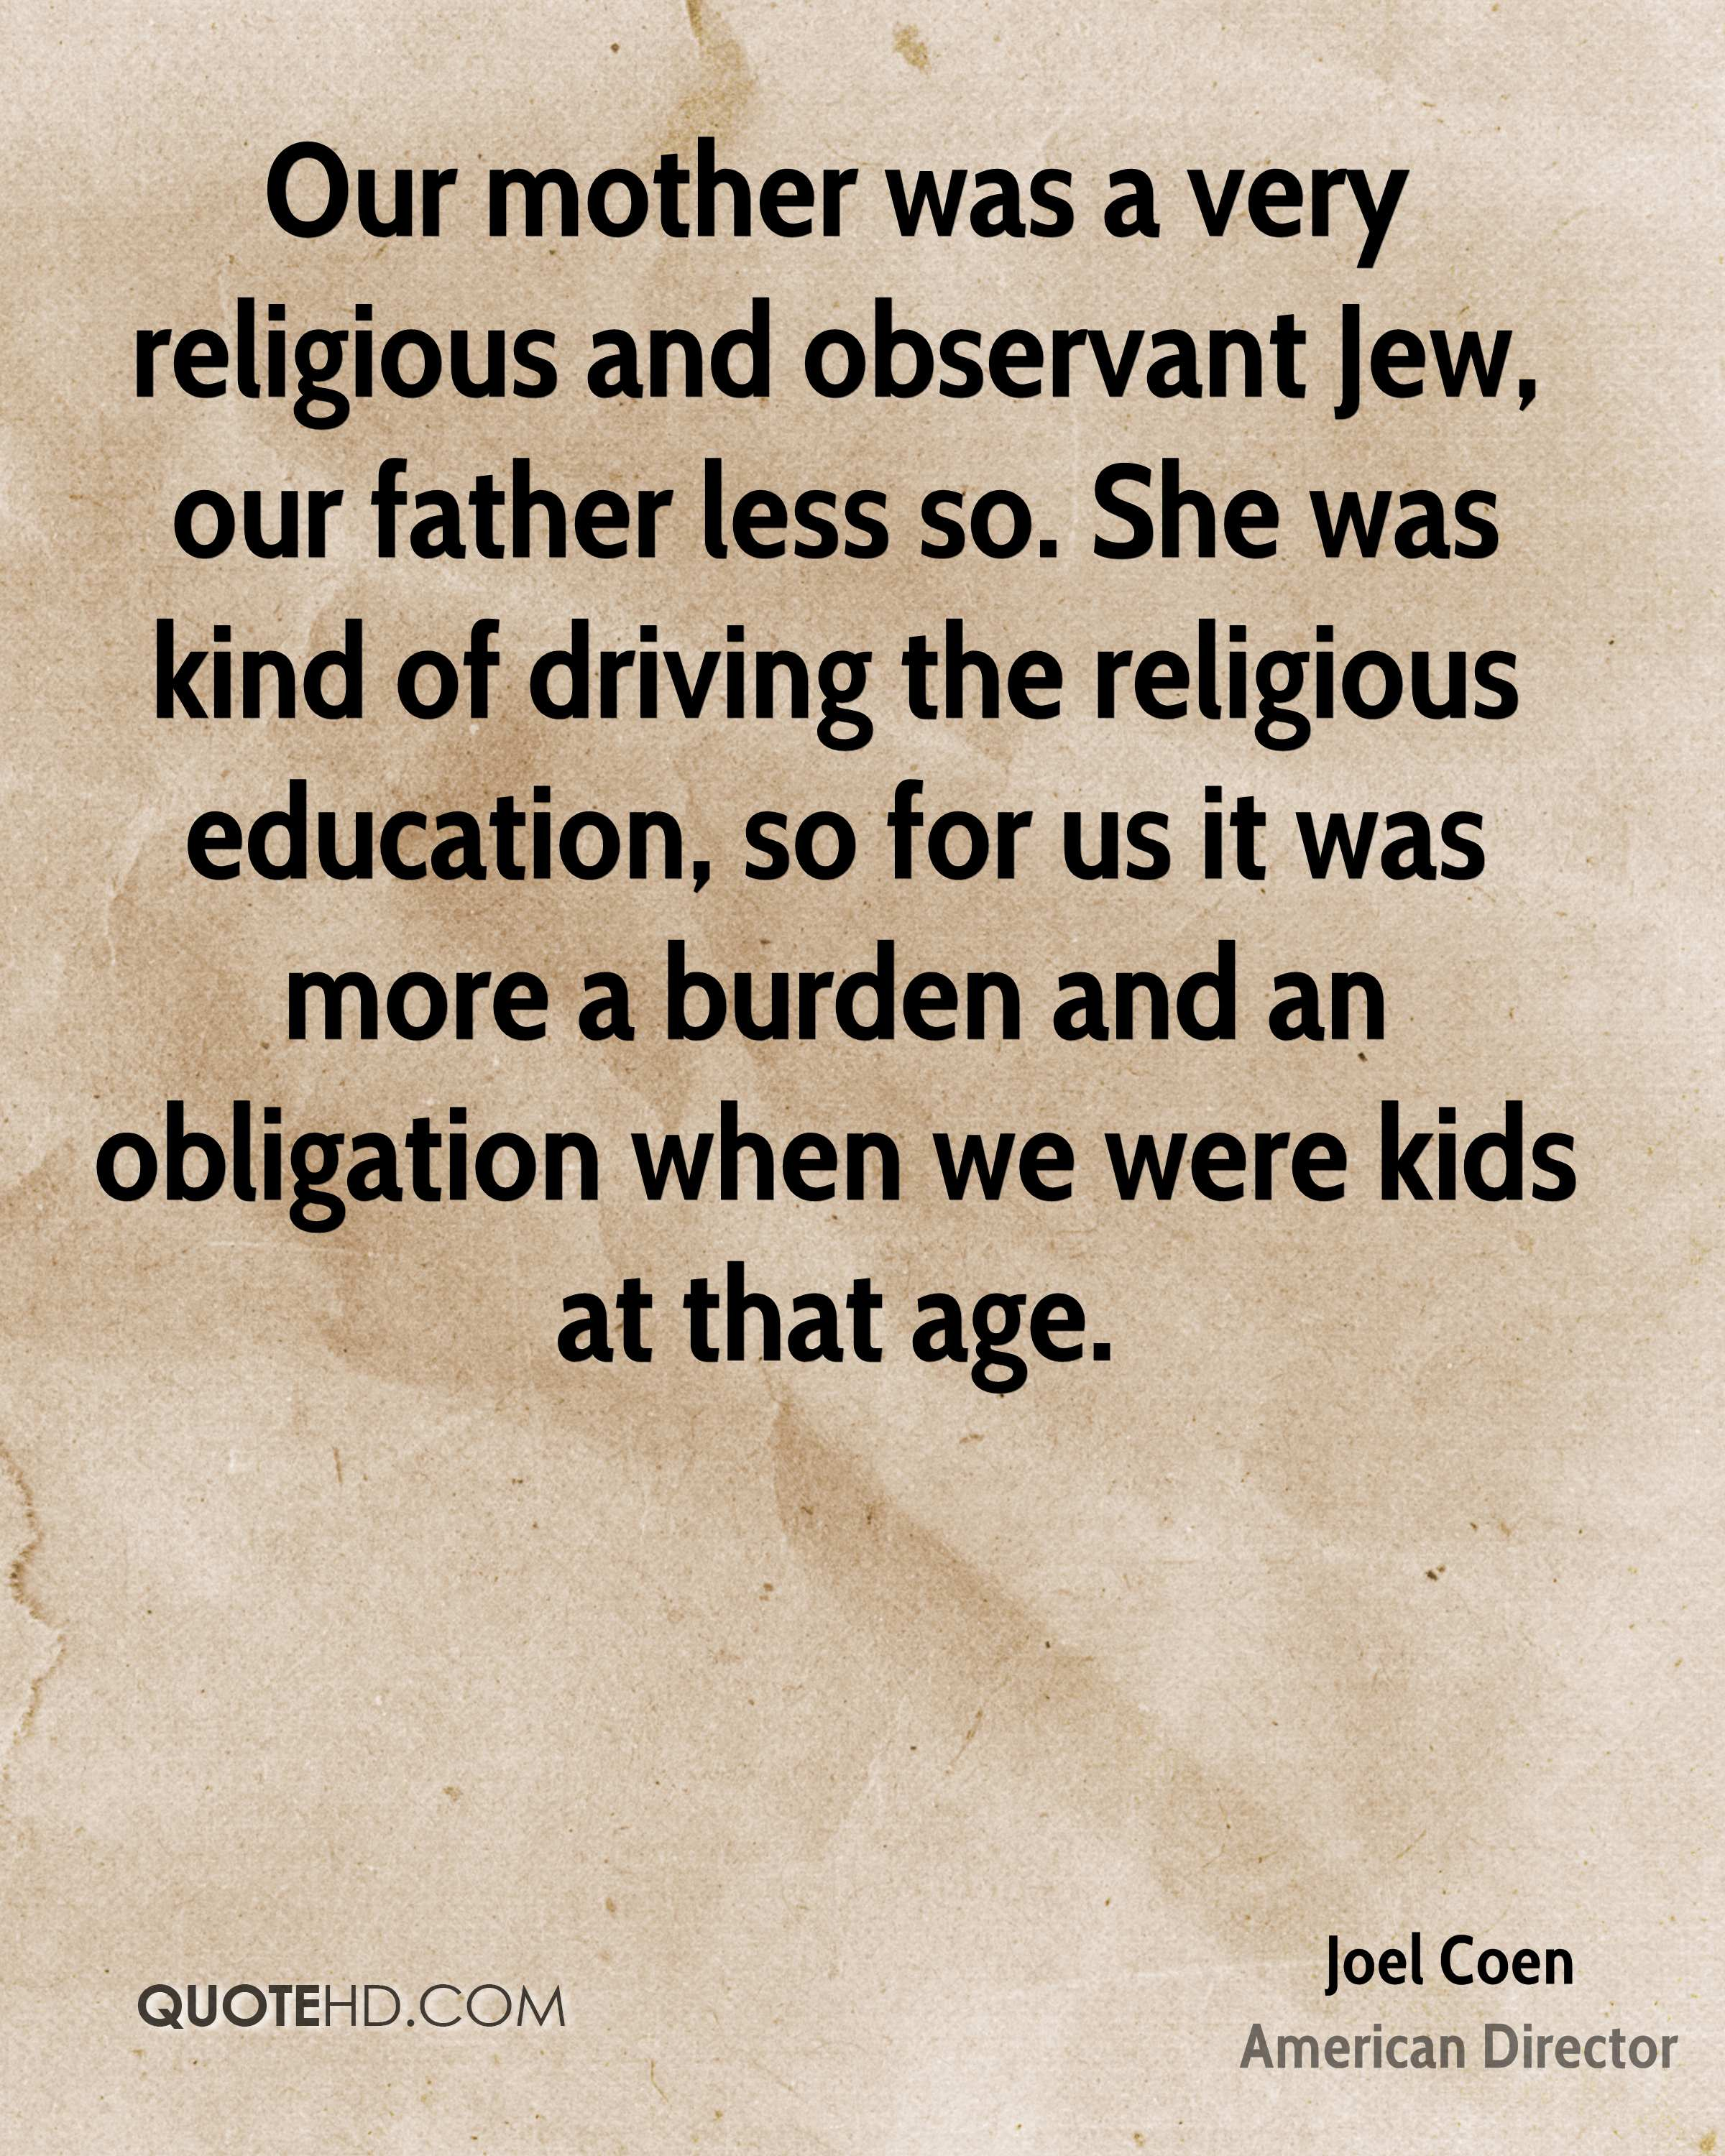 Our mother was a very religious and observant Jew, our father less so. She was kind of driving the religious education, so for us it was more a burden and an obligation when we were kids at that age.